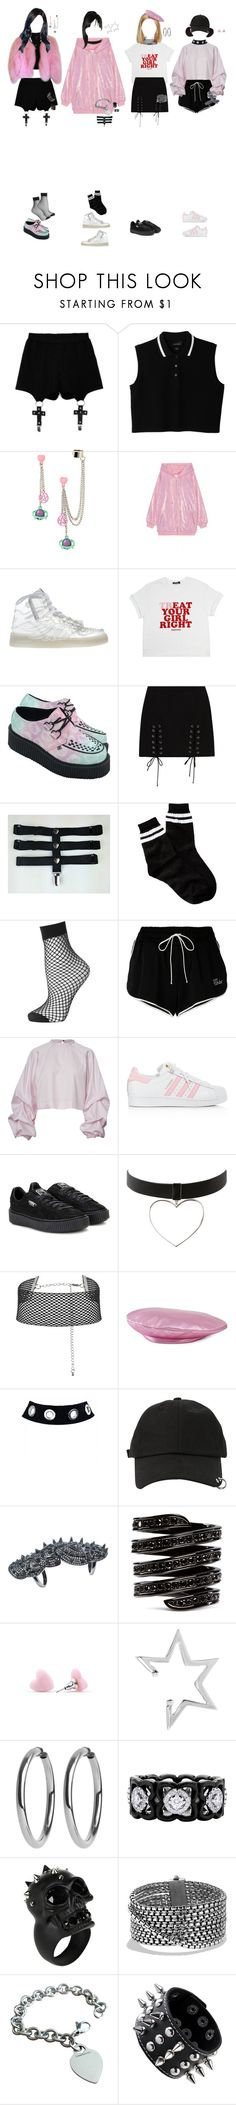 """(Melody)[Special appearance] Girl Gang at YGxUNICEF"" by k-p0p101 ❤ liked on Polyvore featuring Chicnova Fashion, Monki, Hot Topic, Ashish, Jeremy Scott, Hello Kitty, Free Press, Topshop, Off-White and adidas"